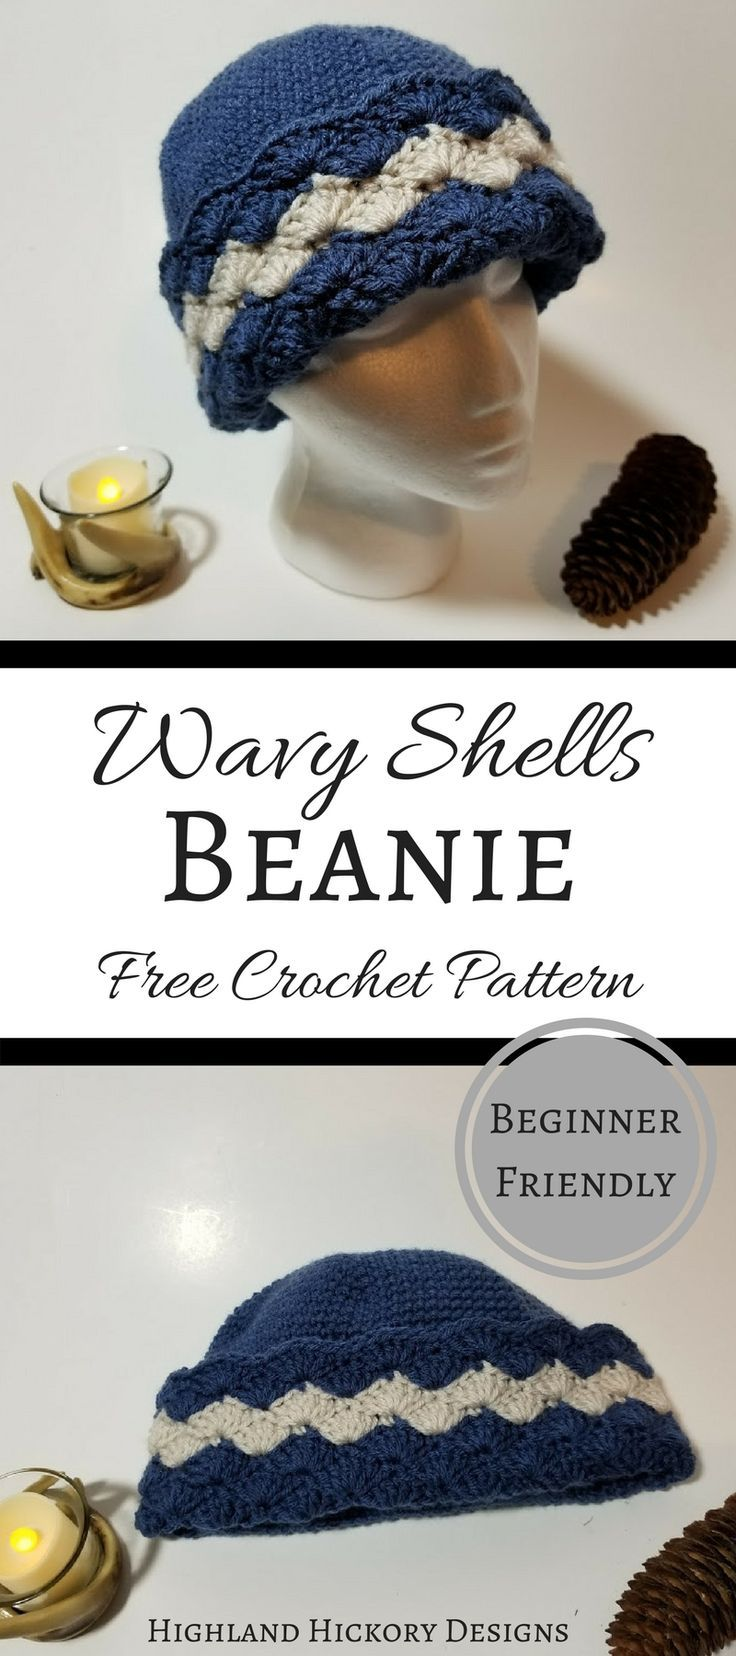 Wavy Shells Beanie | Free Crochet Patterns from My Favorite Bloggers ...